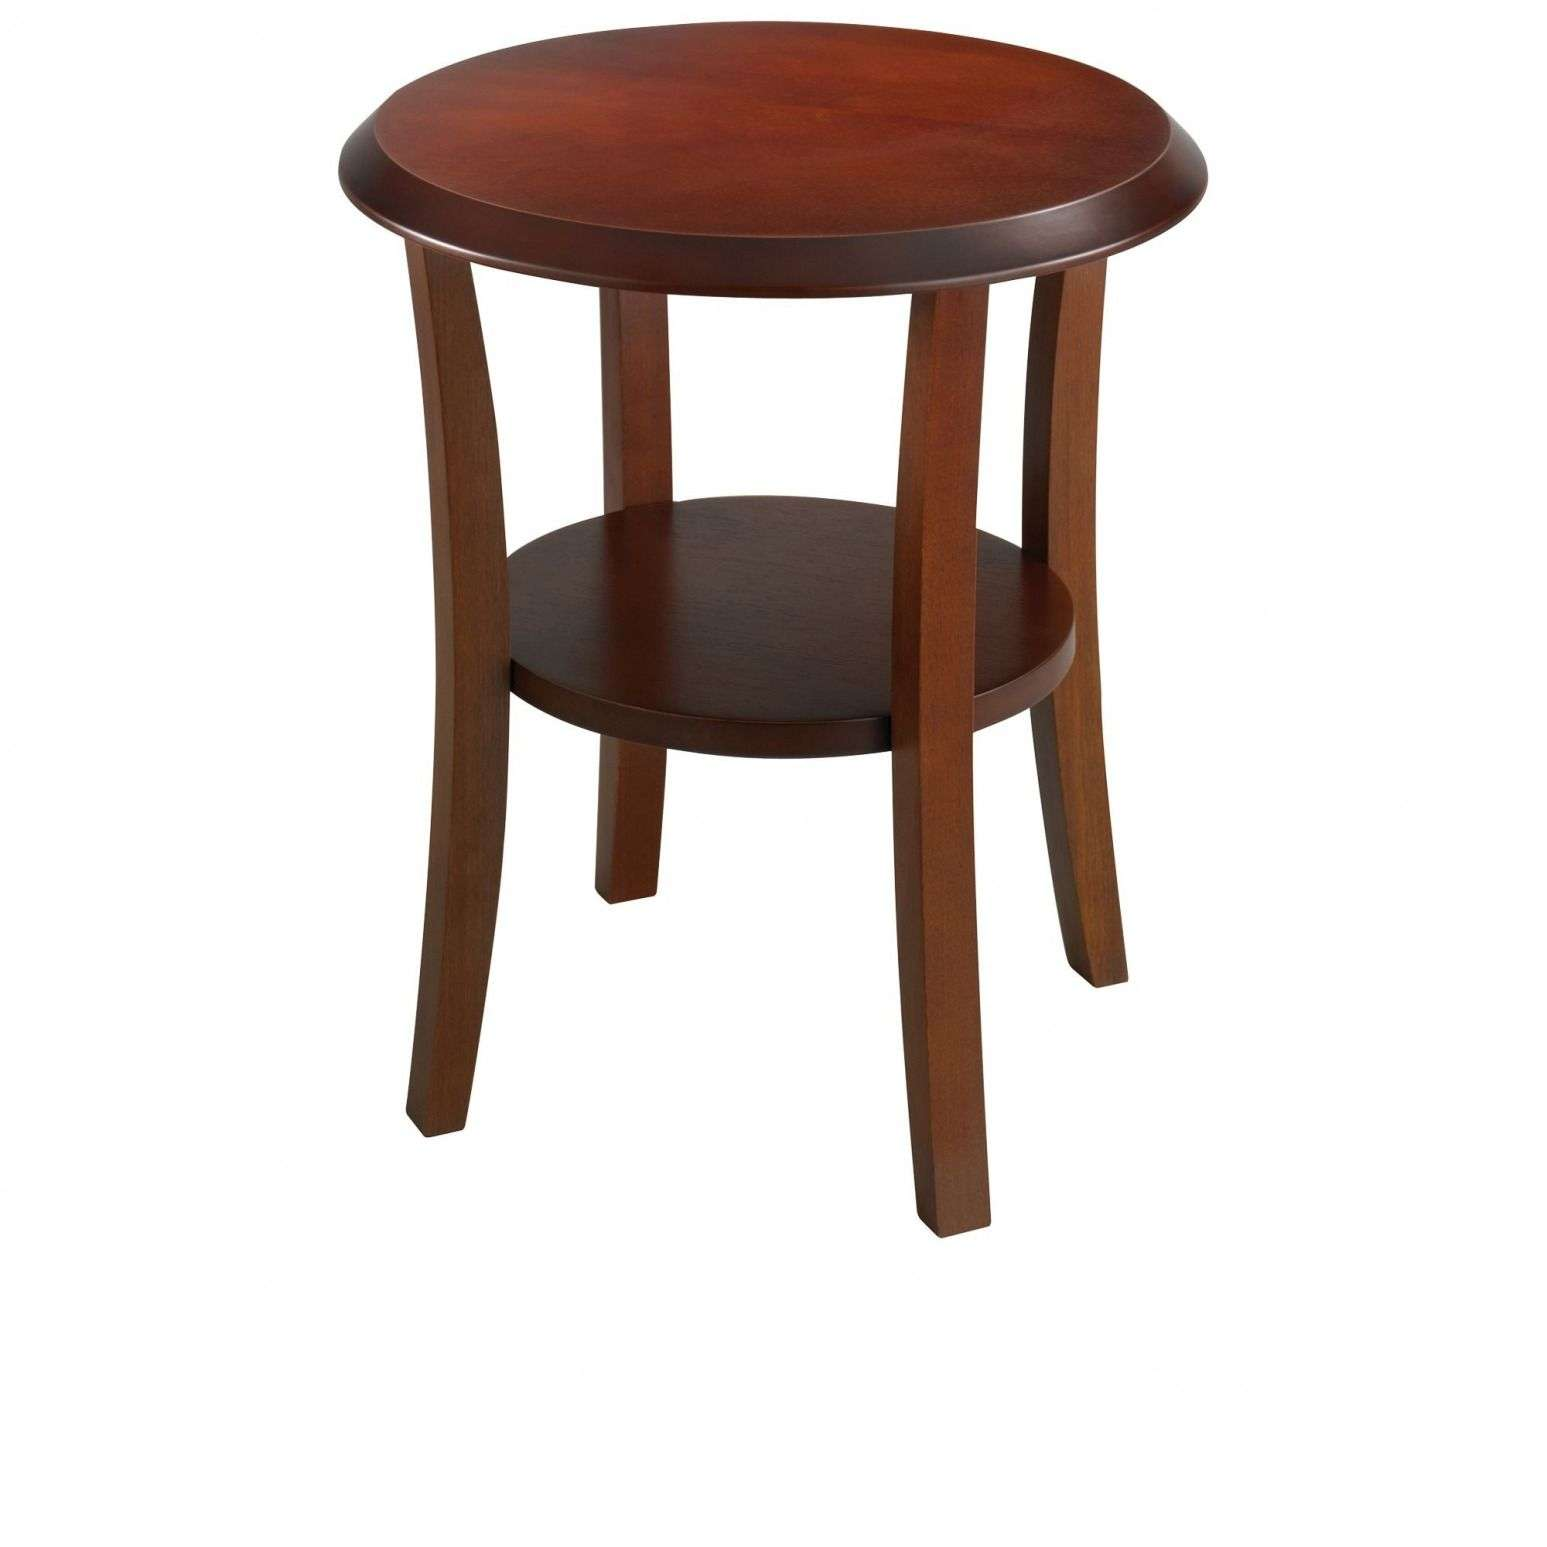 round cherry wood end tables best master furniture check ideas outdoor side table with umbrella hole log bedroom display case coffee sets ethan allen and ashley recliners dark